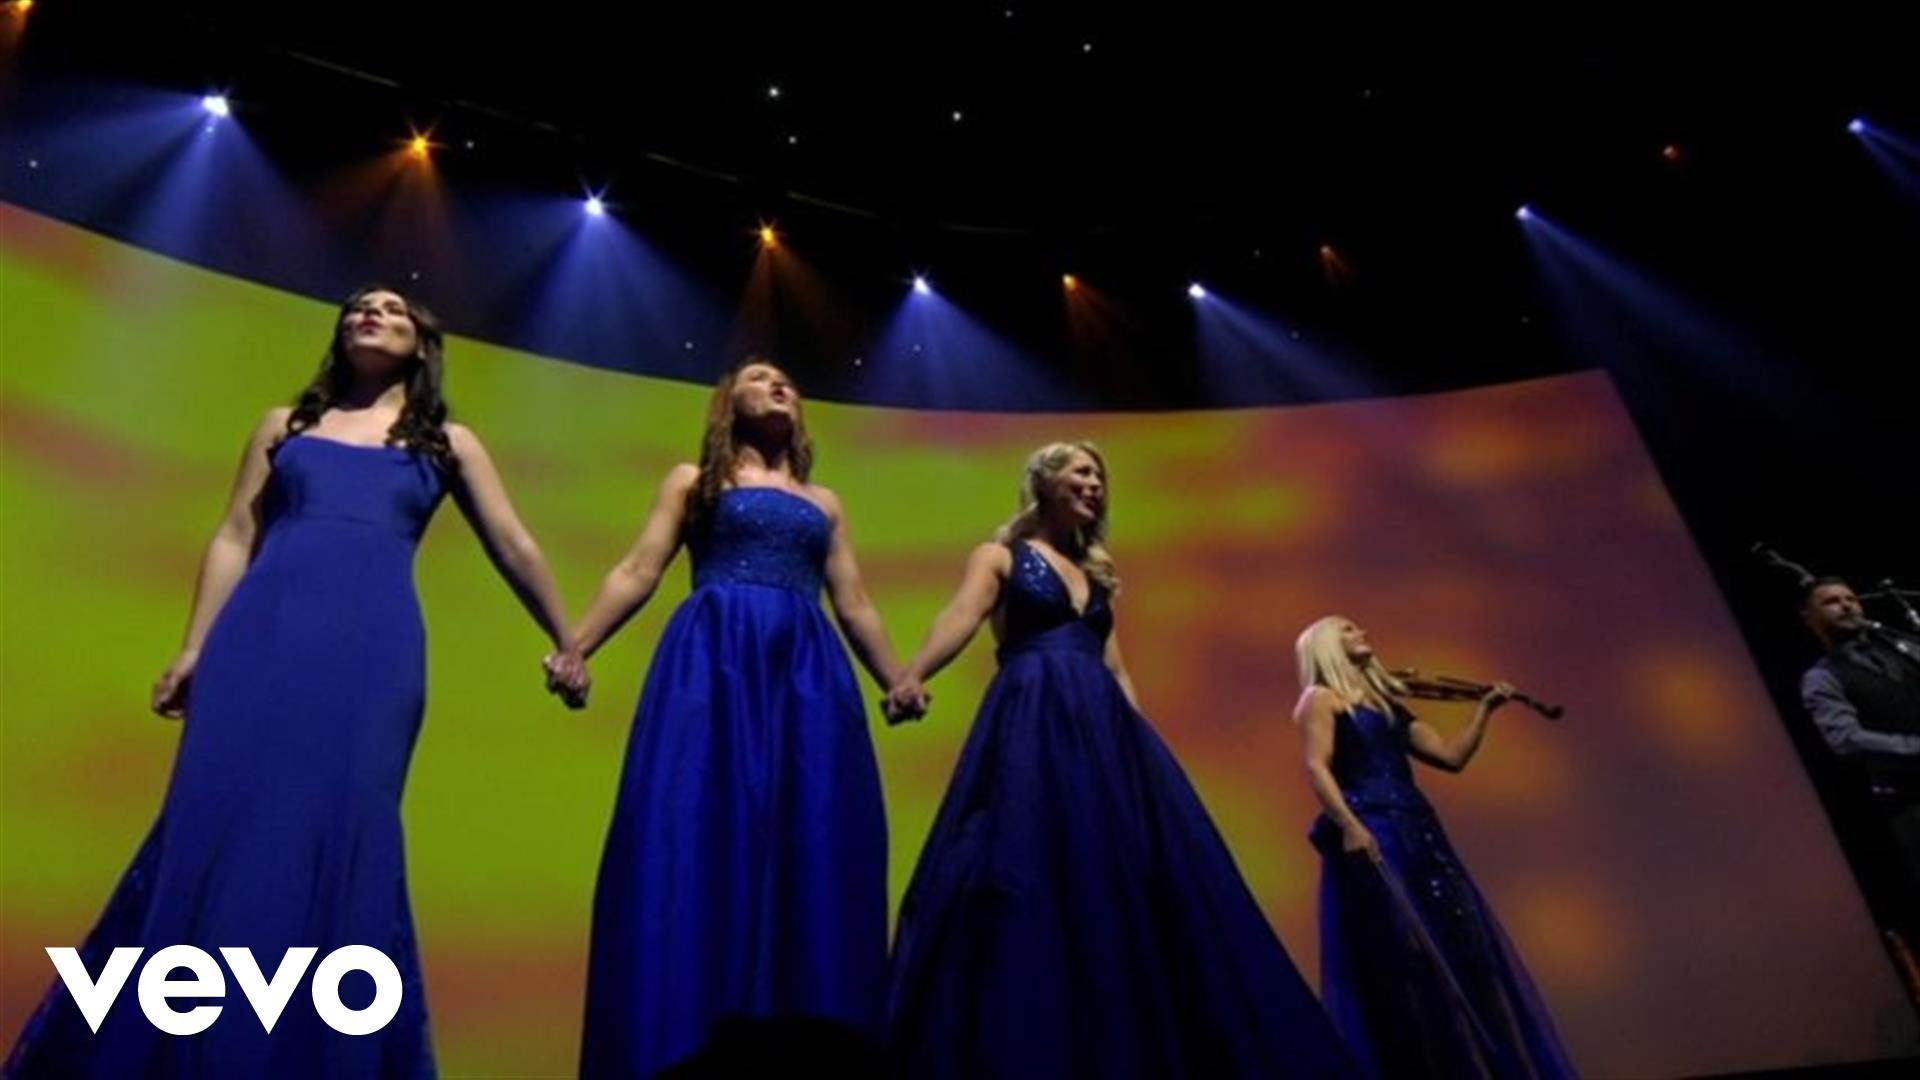 Celtic Woman to embark on a 2018 Homecoming World Tour